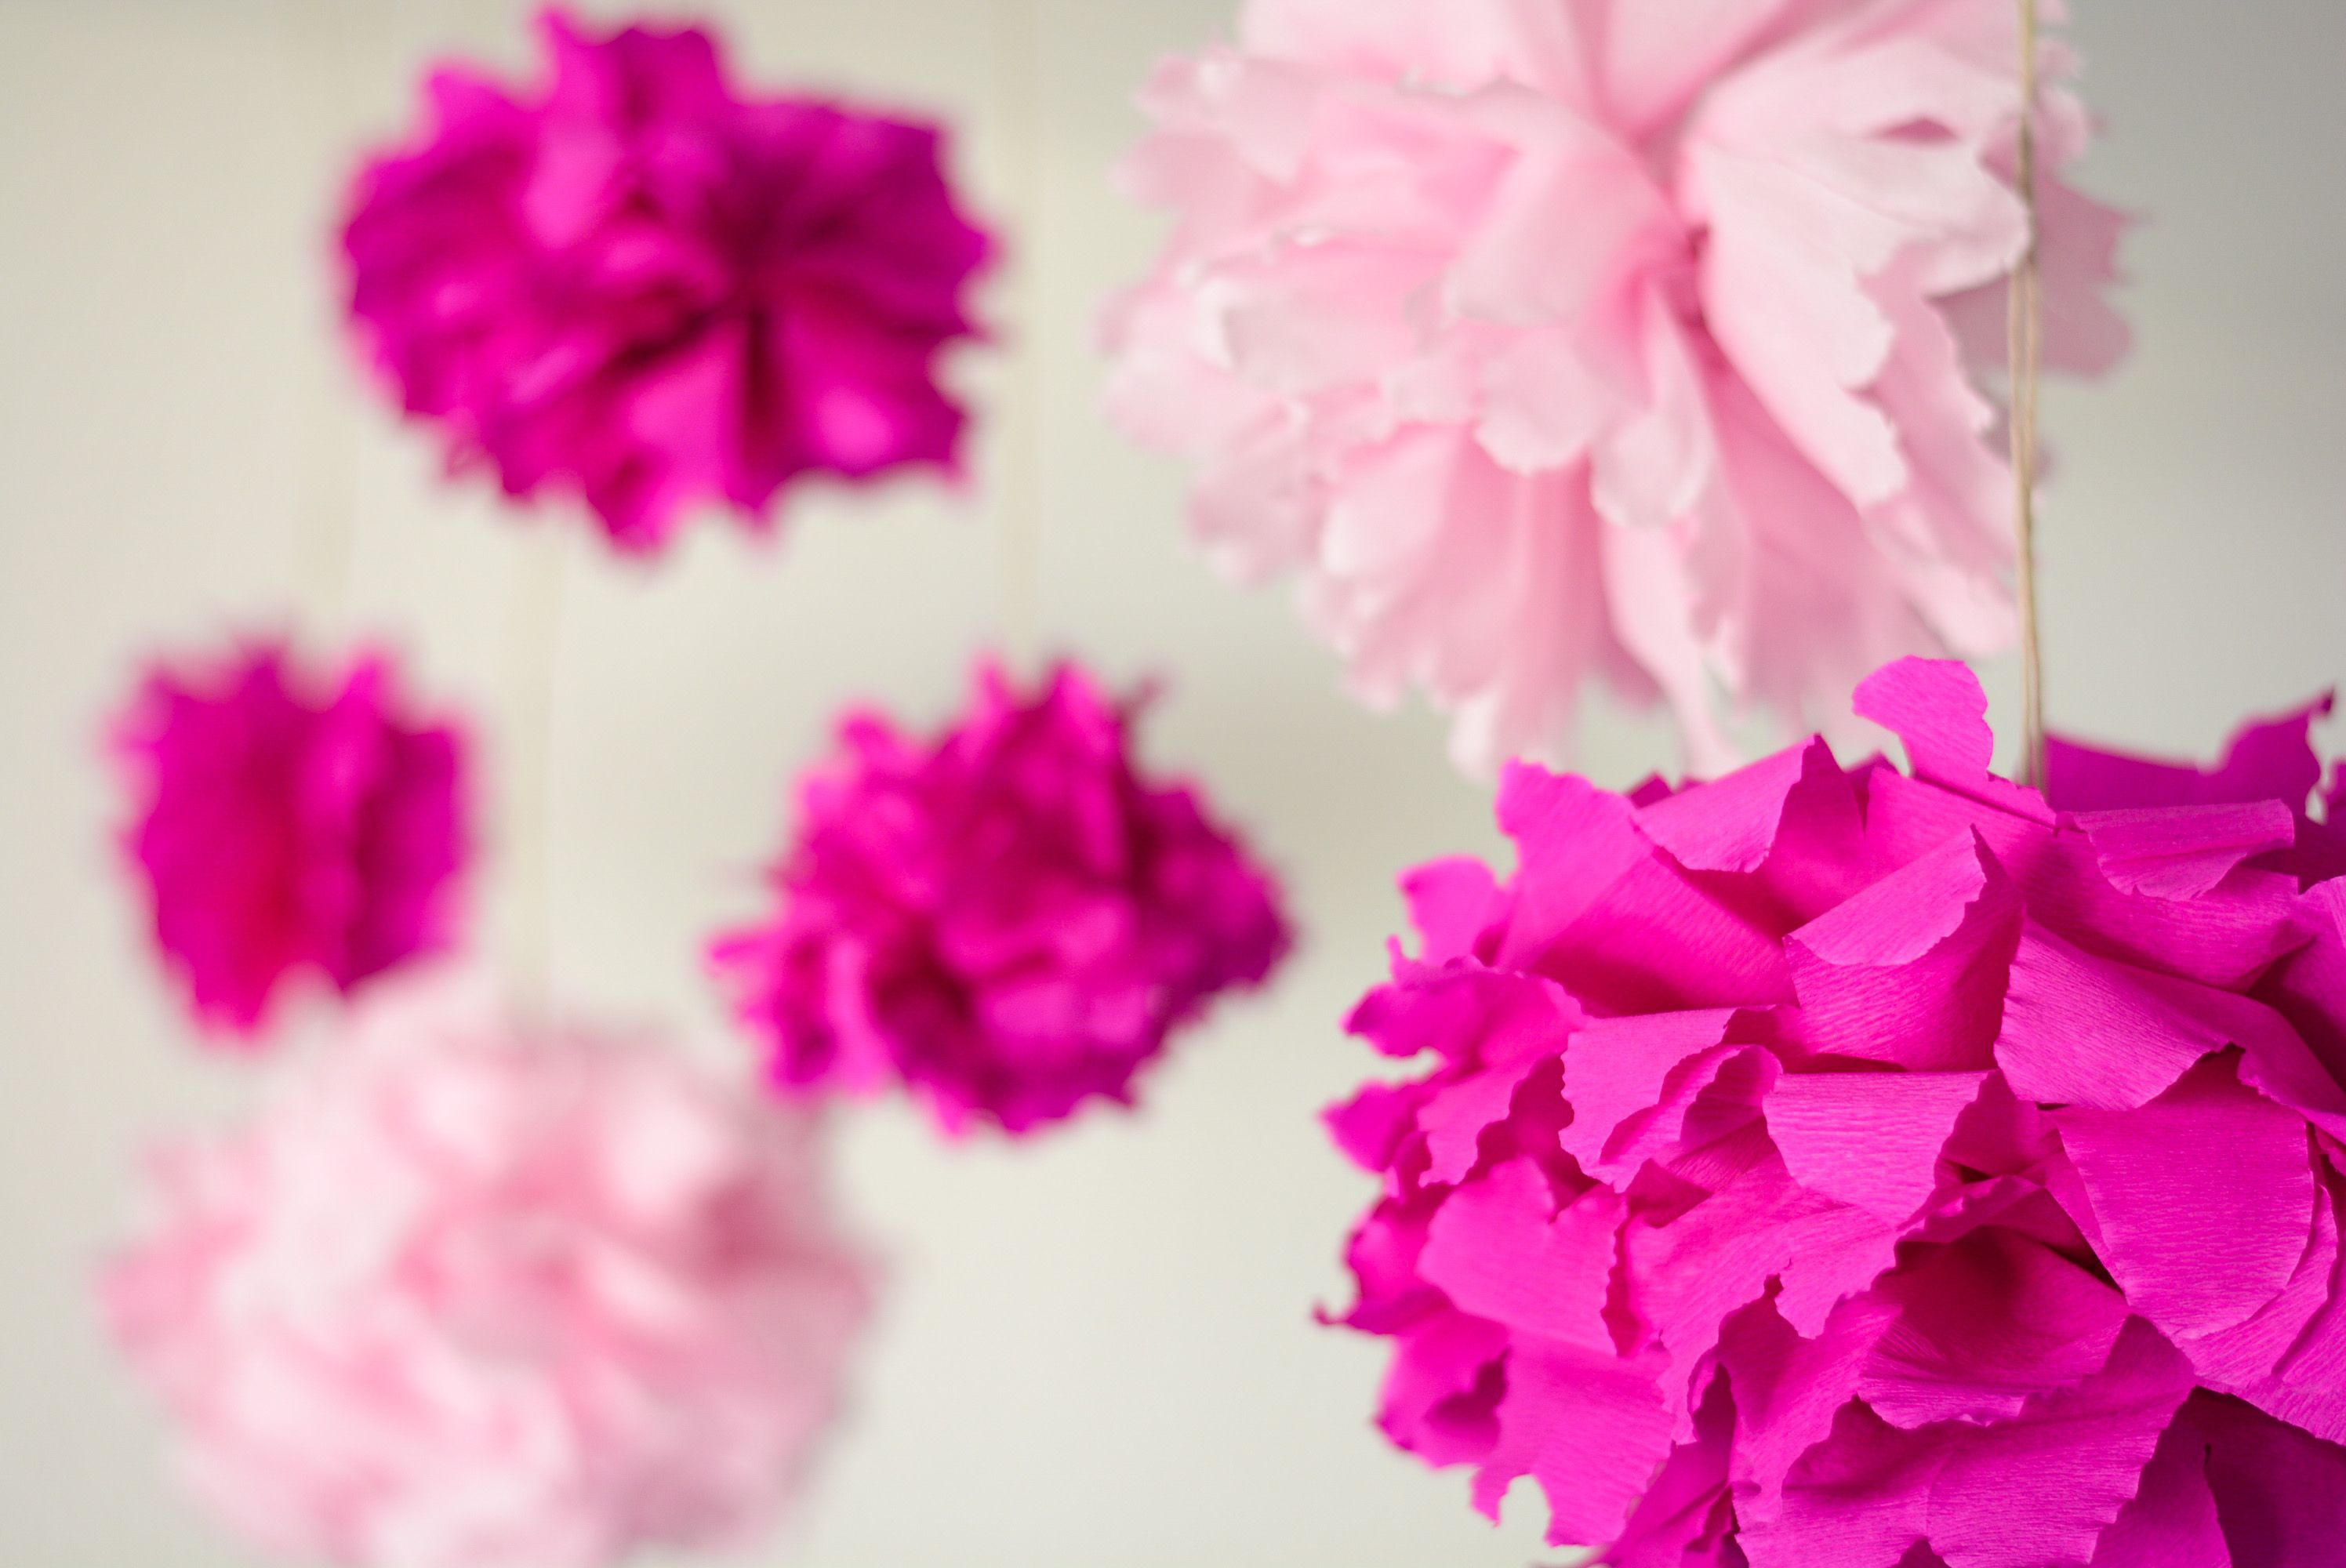 A Real Princess Room Needs Pink Pom Poms With Images Pink Pom Poms Real Princess Pink